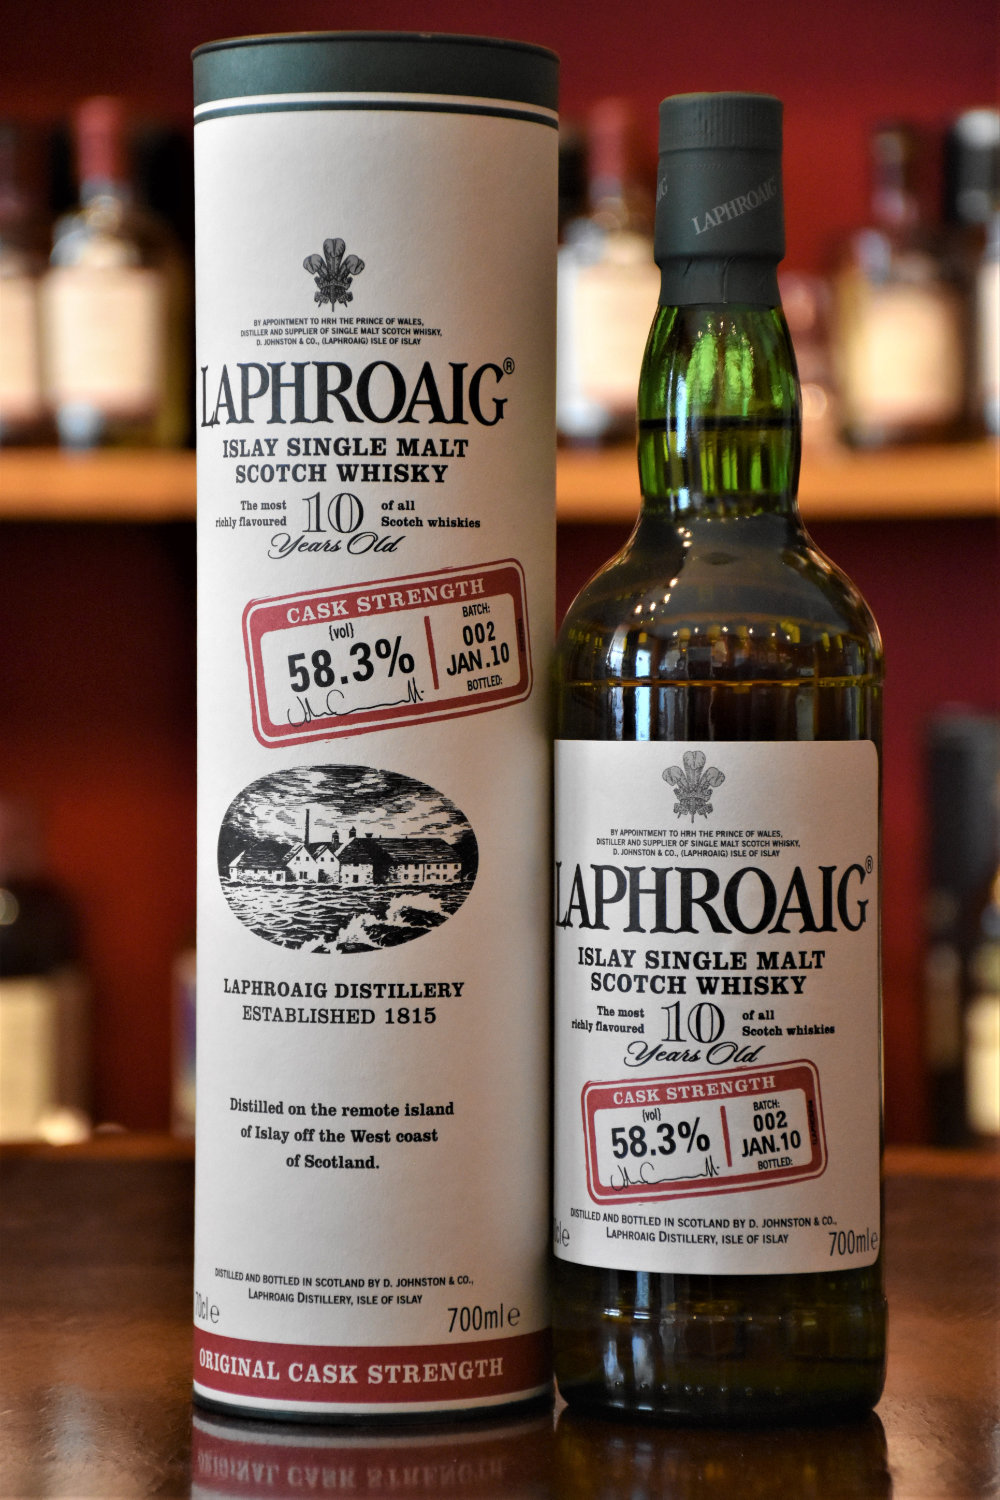 Laphroaig 10 yo Cask Strength Batch No. 002, Jan. 2010, 58,3% Alc.Vol., Distillery Original Bottling